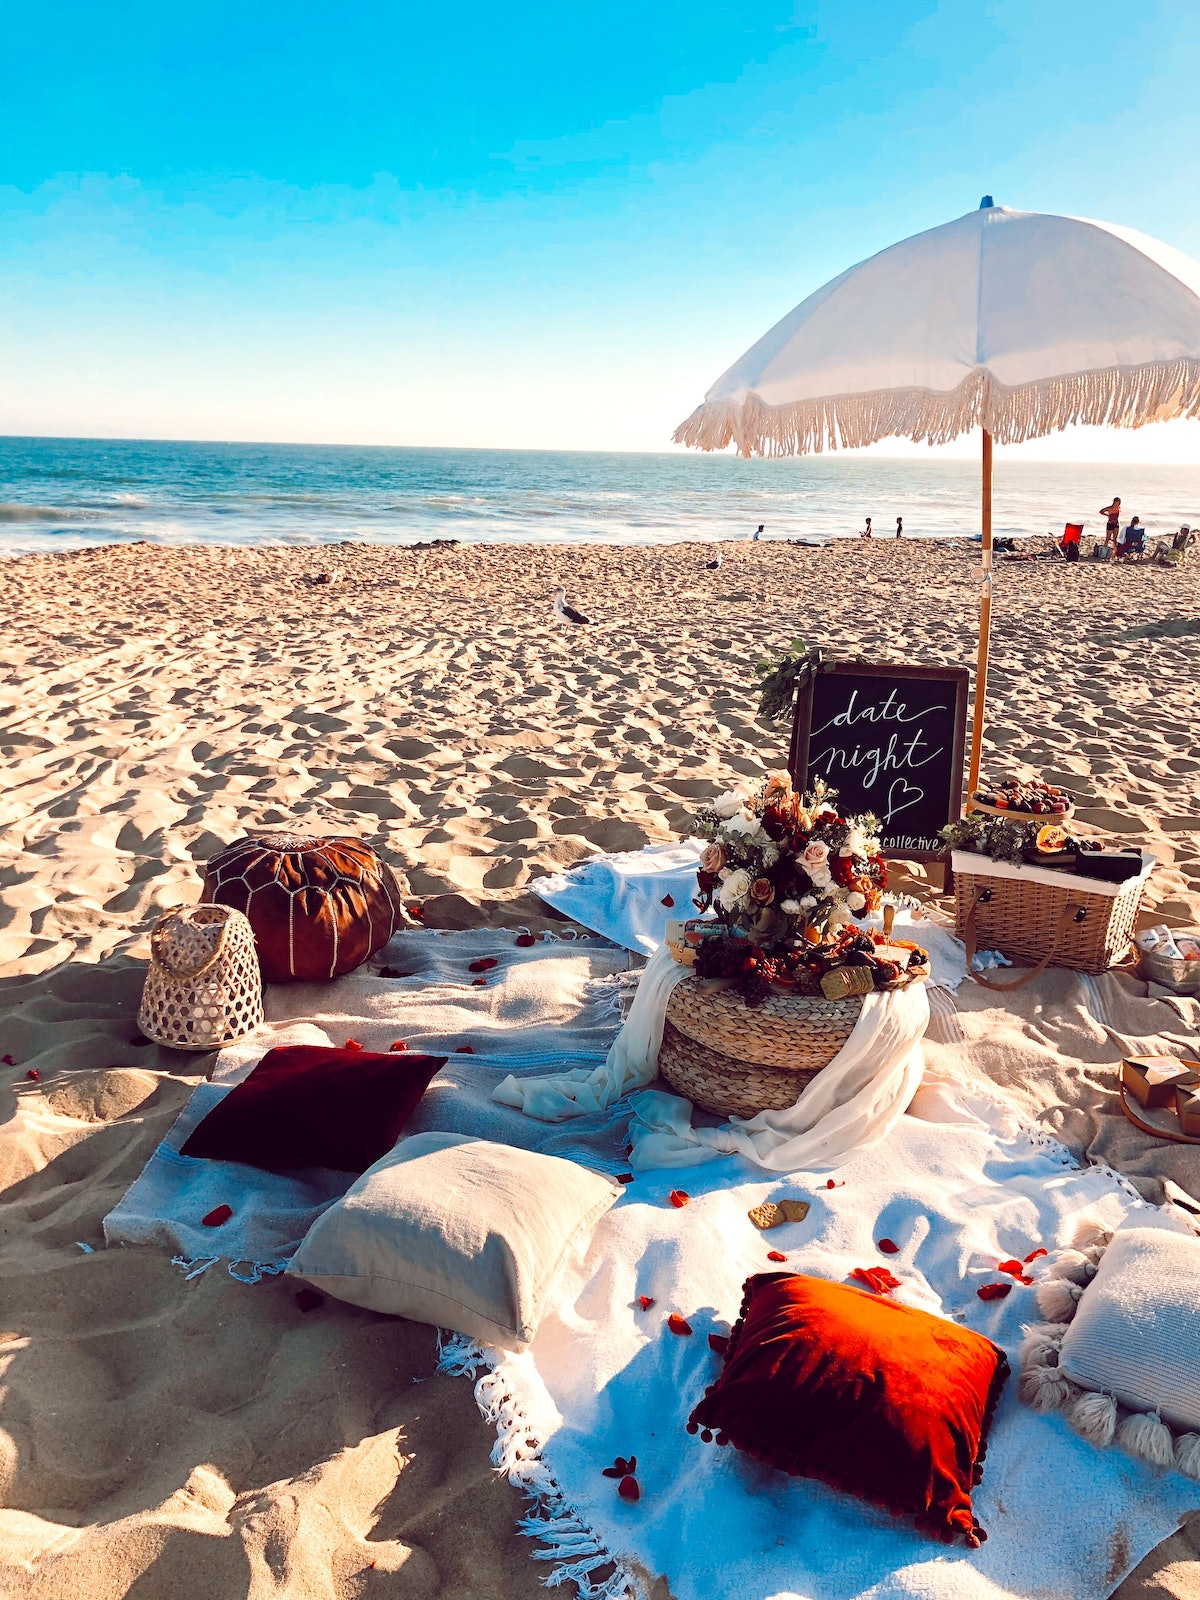 The Picnic Collective's date night packages make for a great, summery experience for you and your SO.